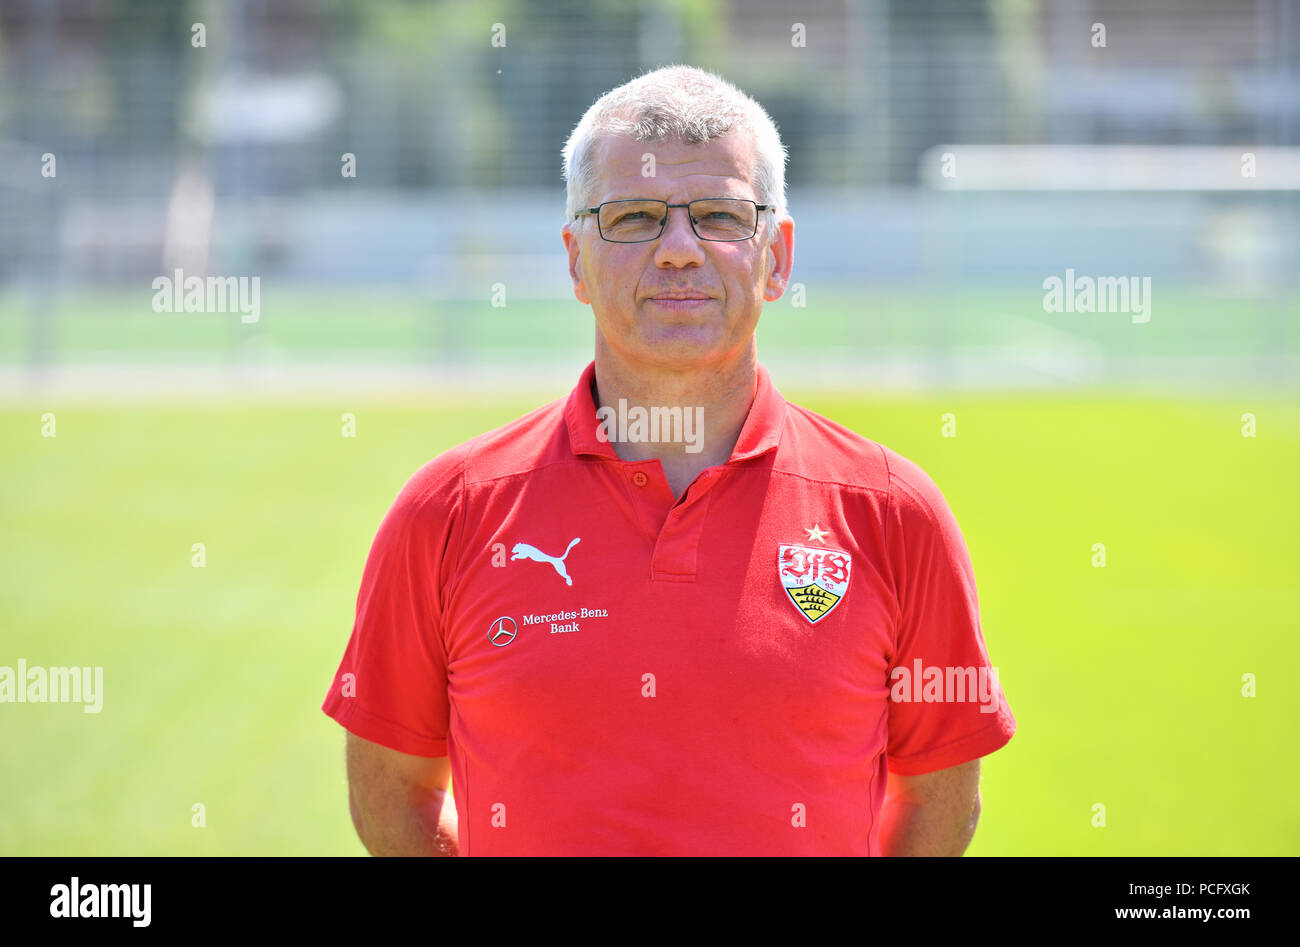 Stuttgart, Germany. 19th July, 2018. German Bundesliga, official photocall VfB Stuttgart for season 2018/19 in Stuttgart, Germany: kitman Michael Meusch ; Credit: Jan-Philipp Strobel/dpa | usage worldwide/dpa/Alamy Live News - Stock Image